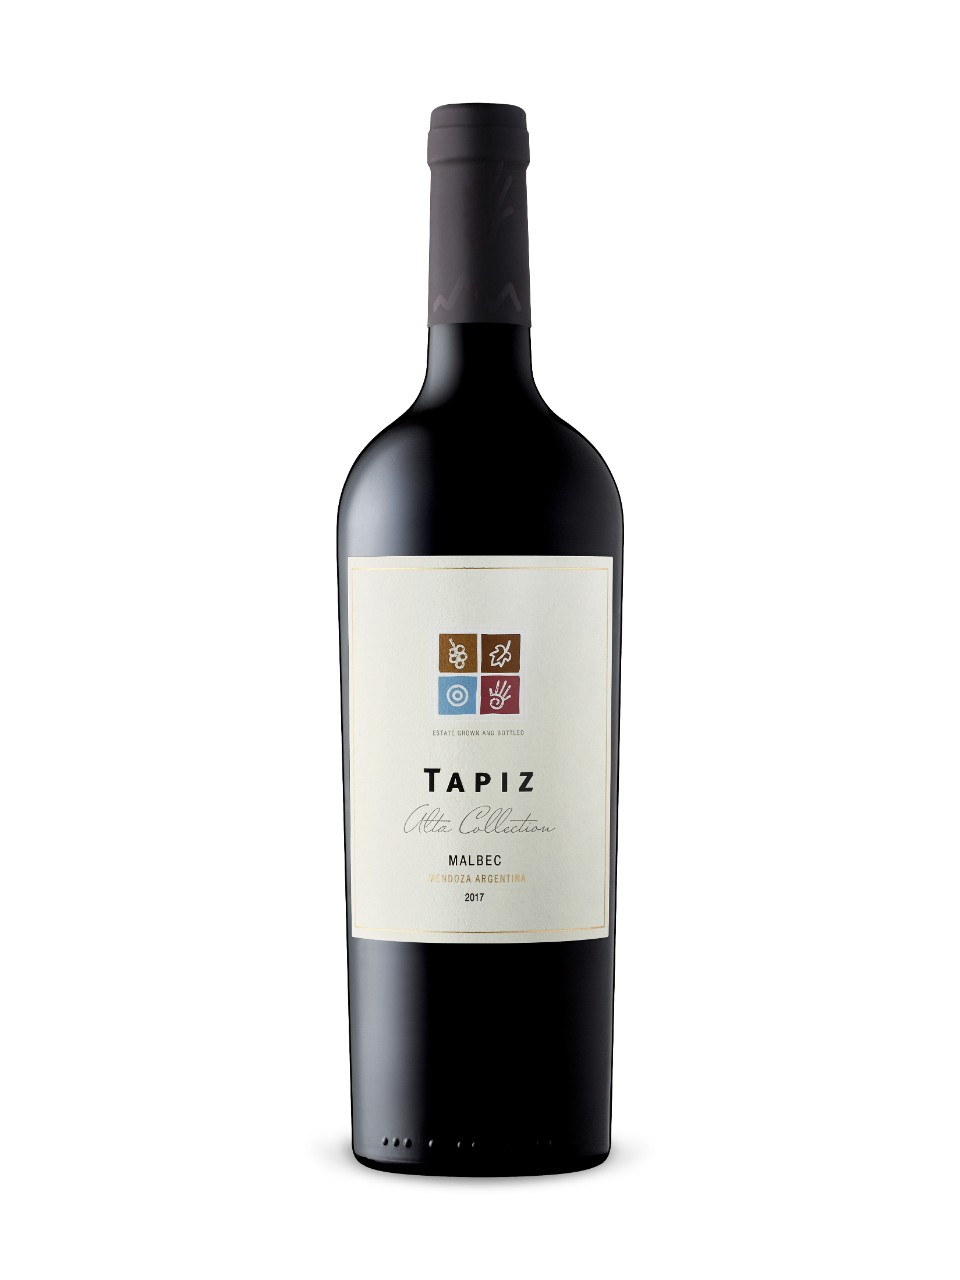 Tapiz Alta Collection Malbec 2017 from LCBO